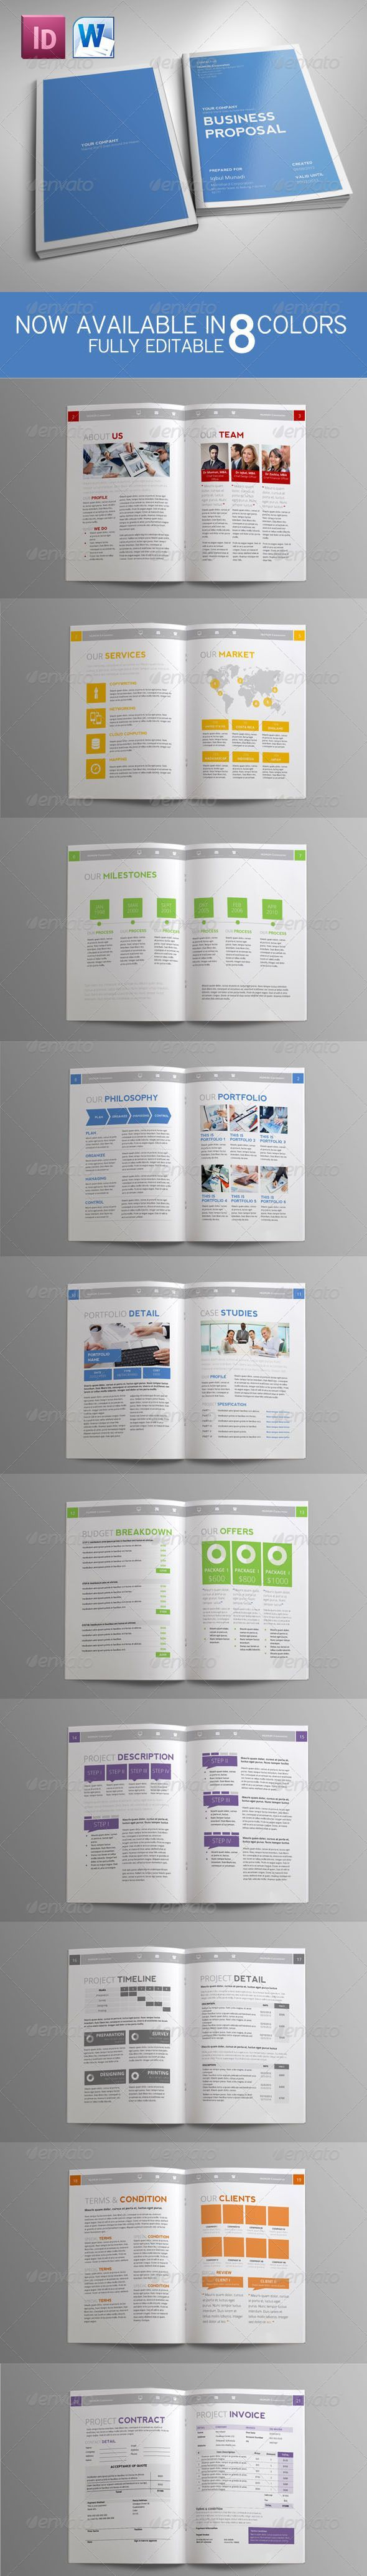 Commercial Proposal Format Stunning 20 Best Business Propocal Images On Pinterest  Editorial Design .